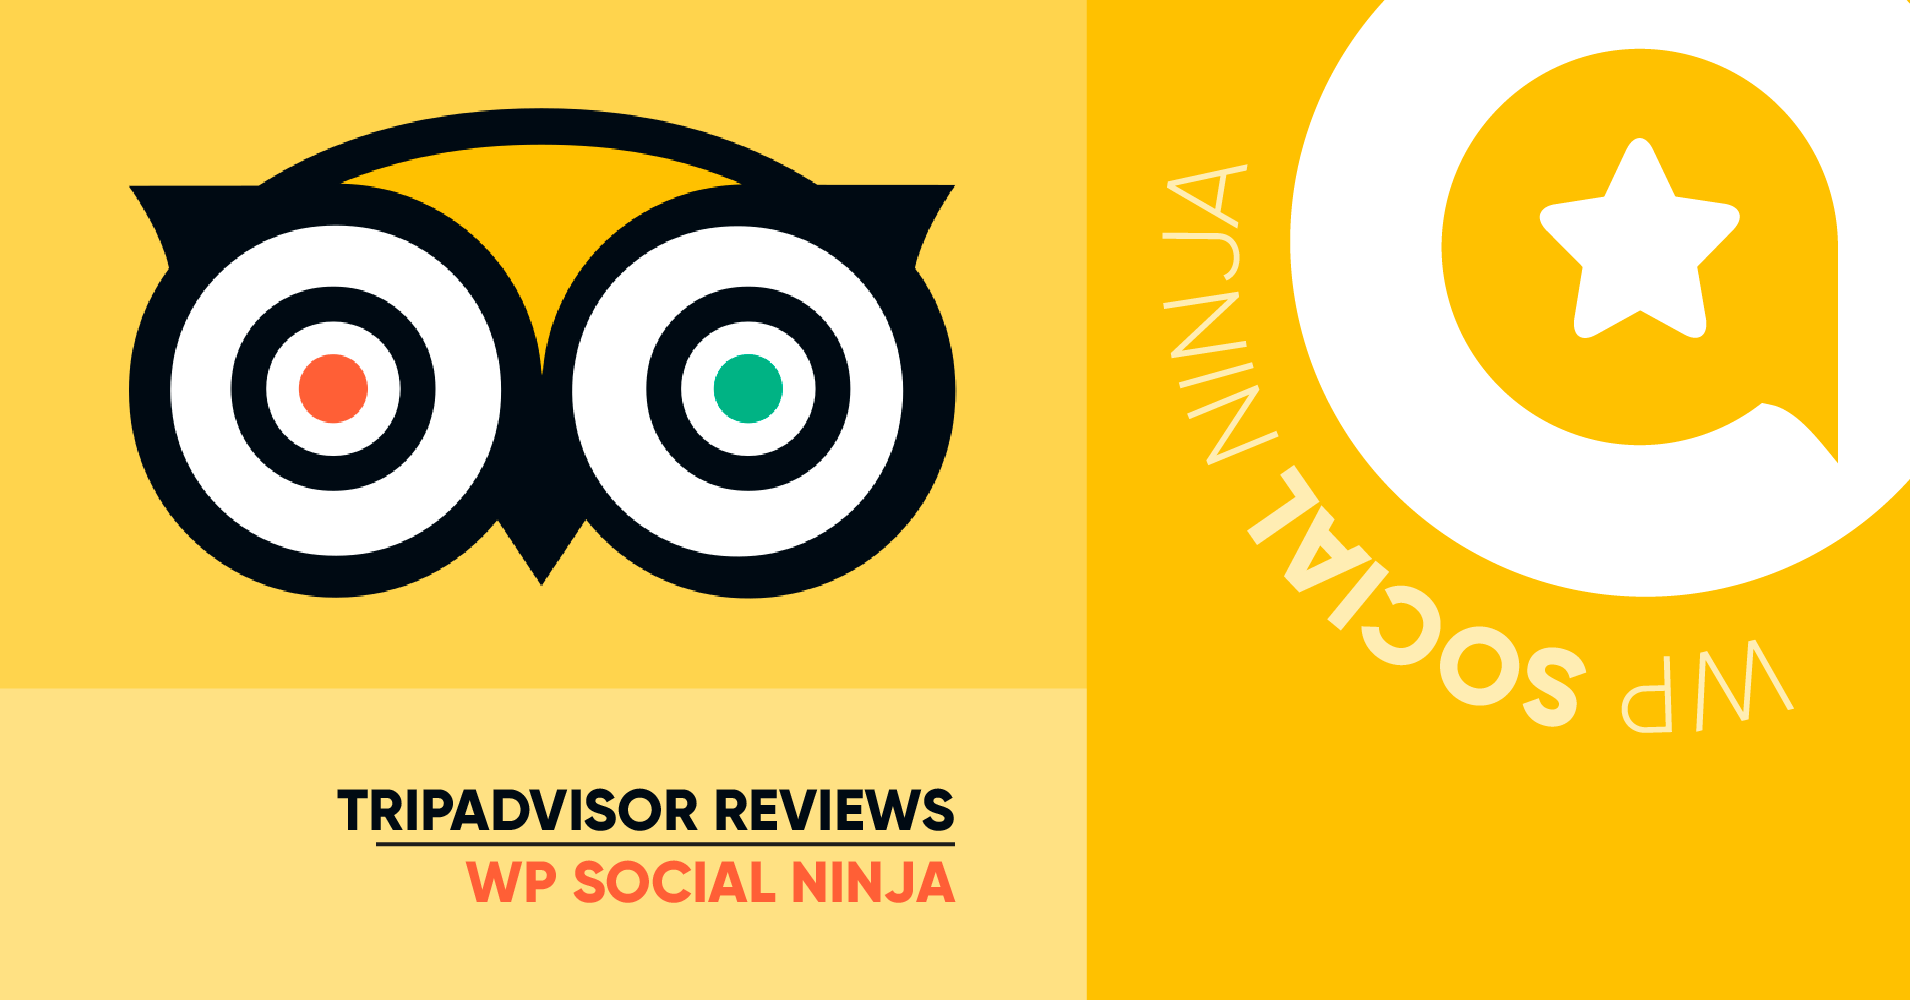 How to Add Tripadvisor Reviews to Your Website (Simple Way)